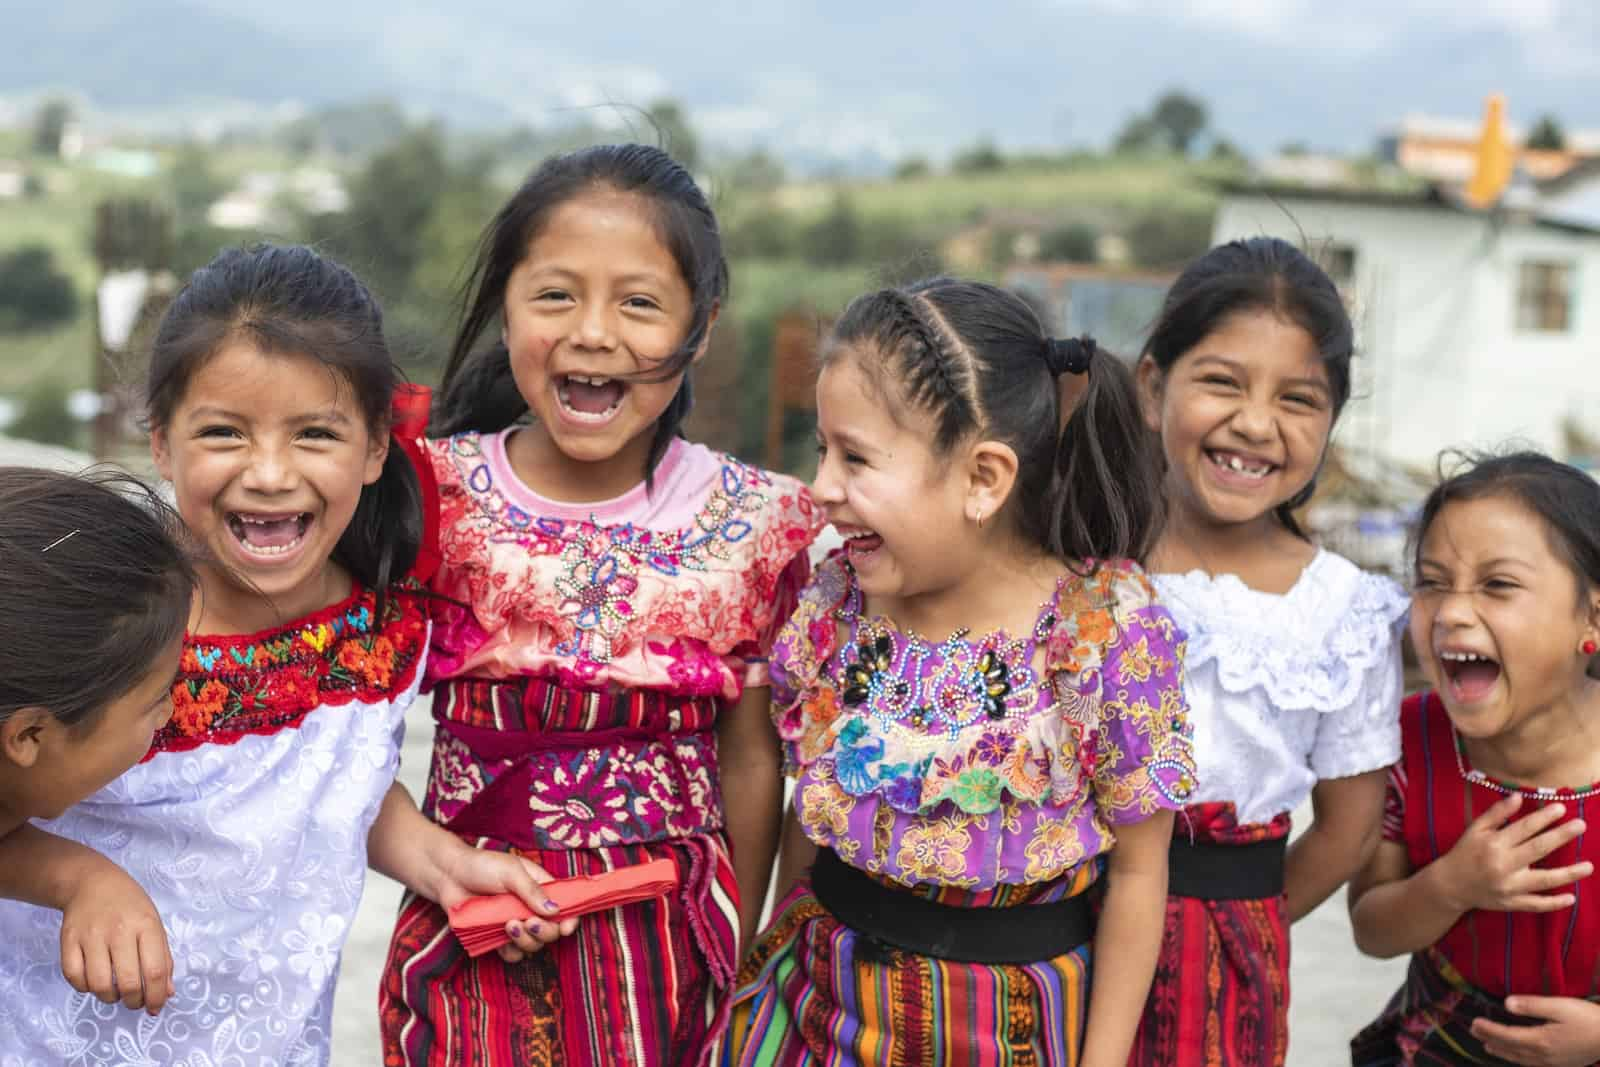 Girls in traditional Guatemalan dress laugh together